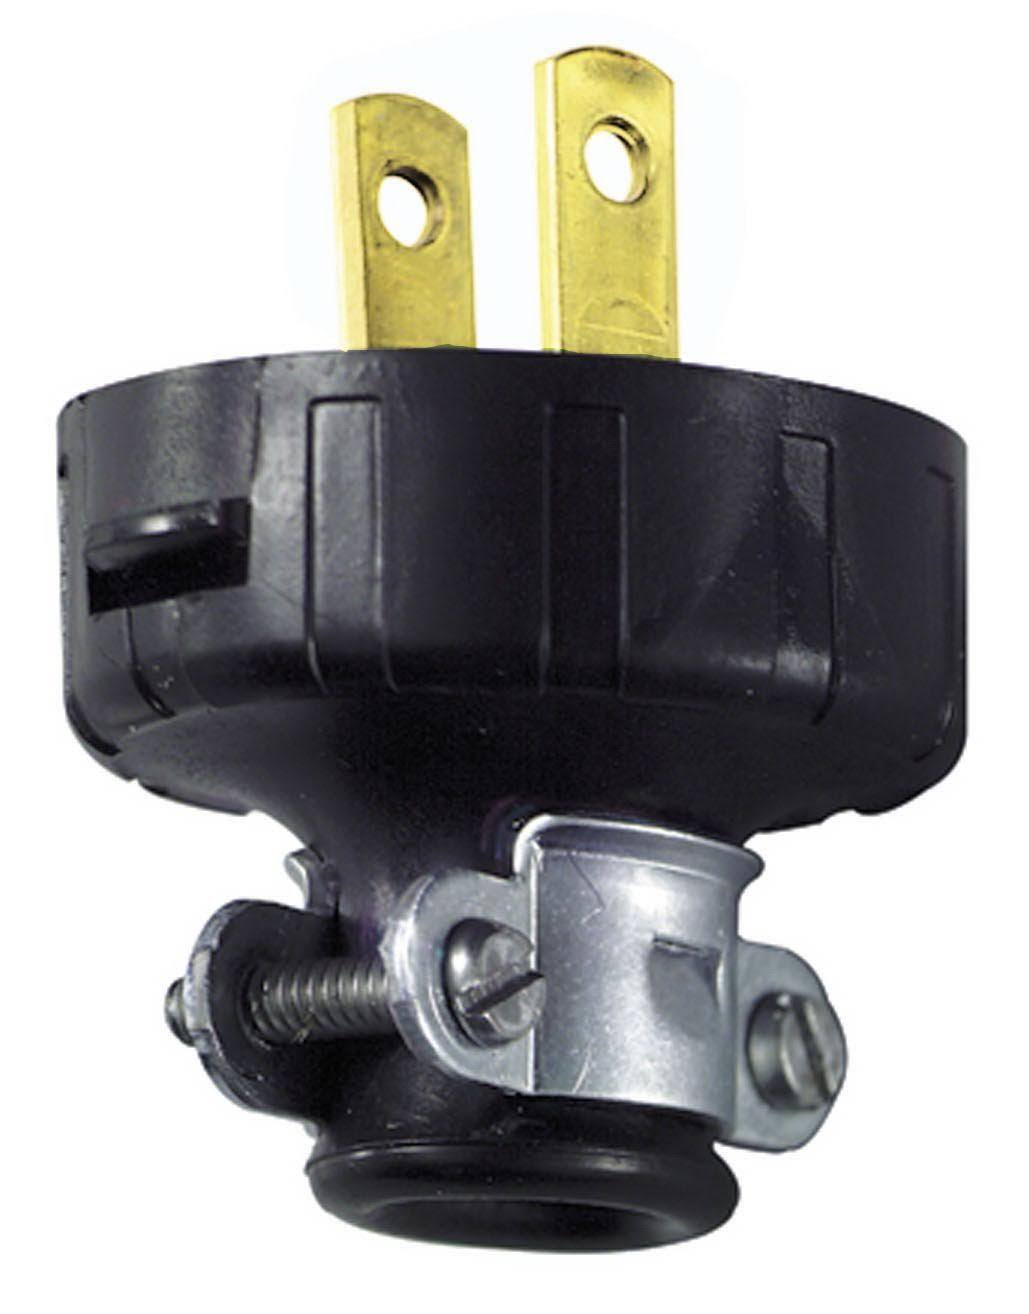 Leviton Heavy Duty Plug - Black, 15 Amp, 125V